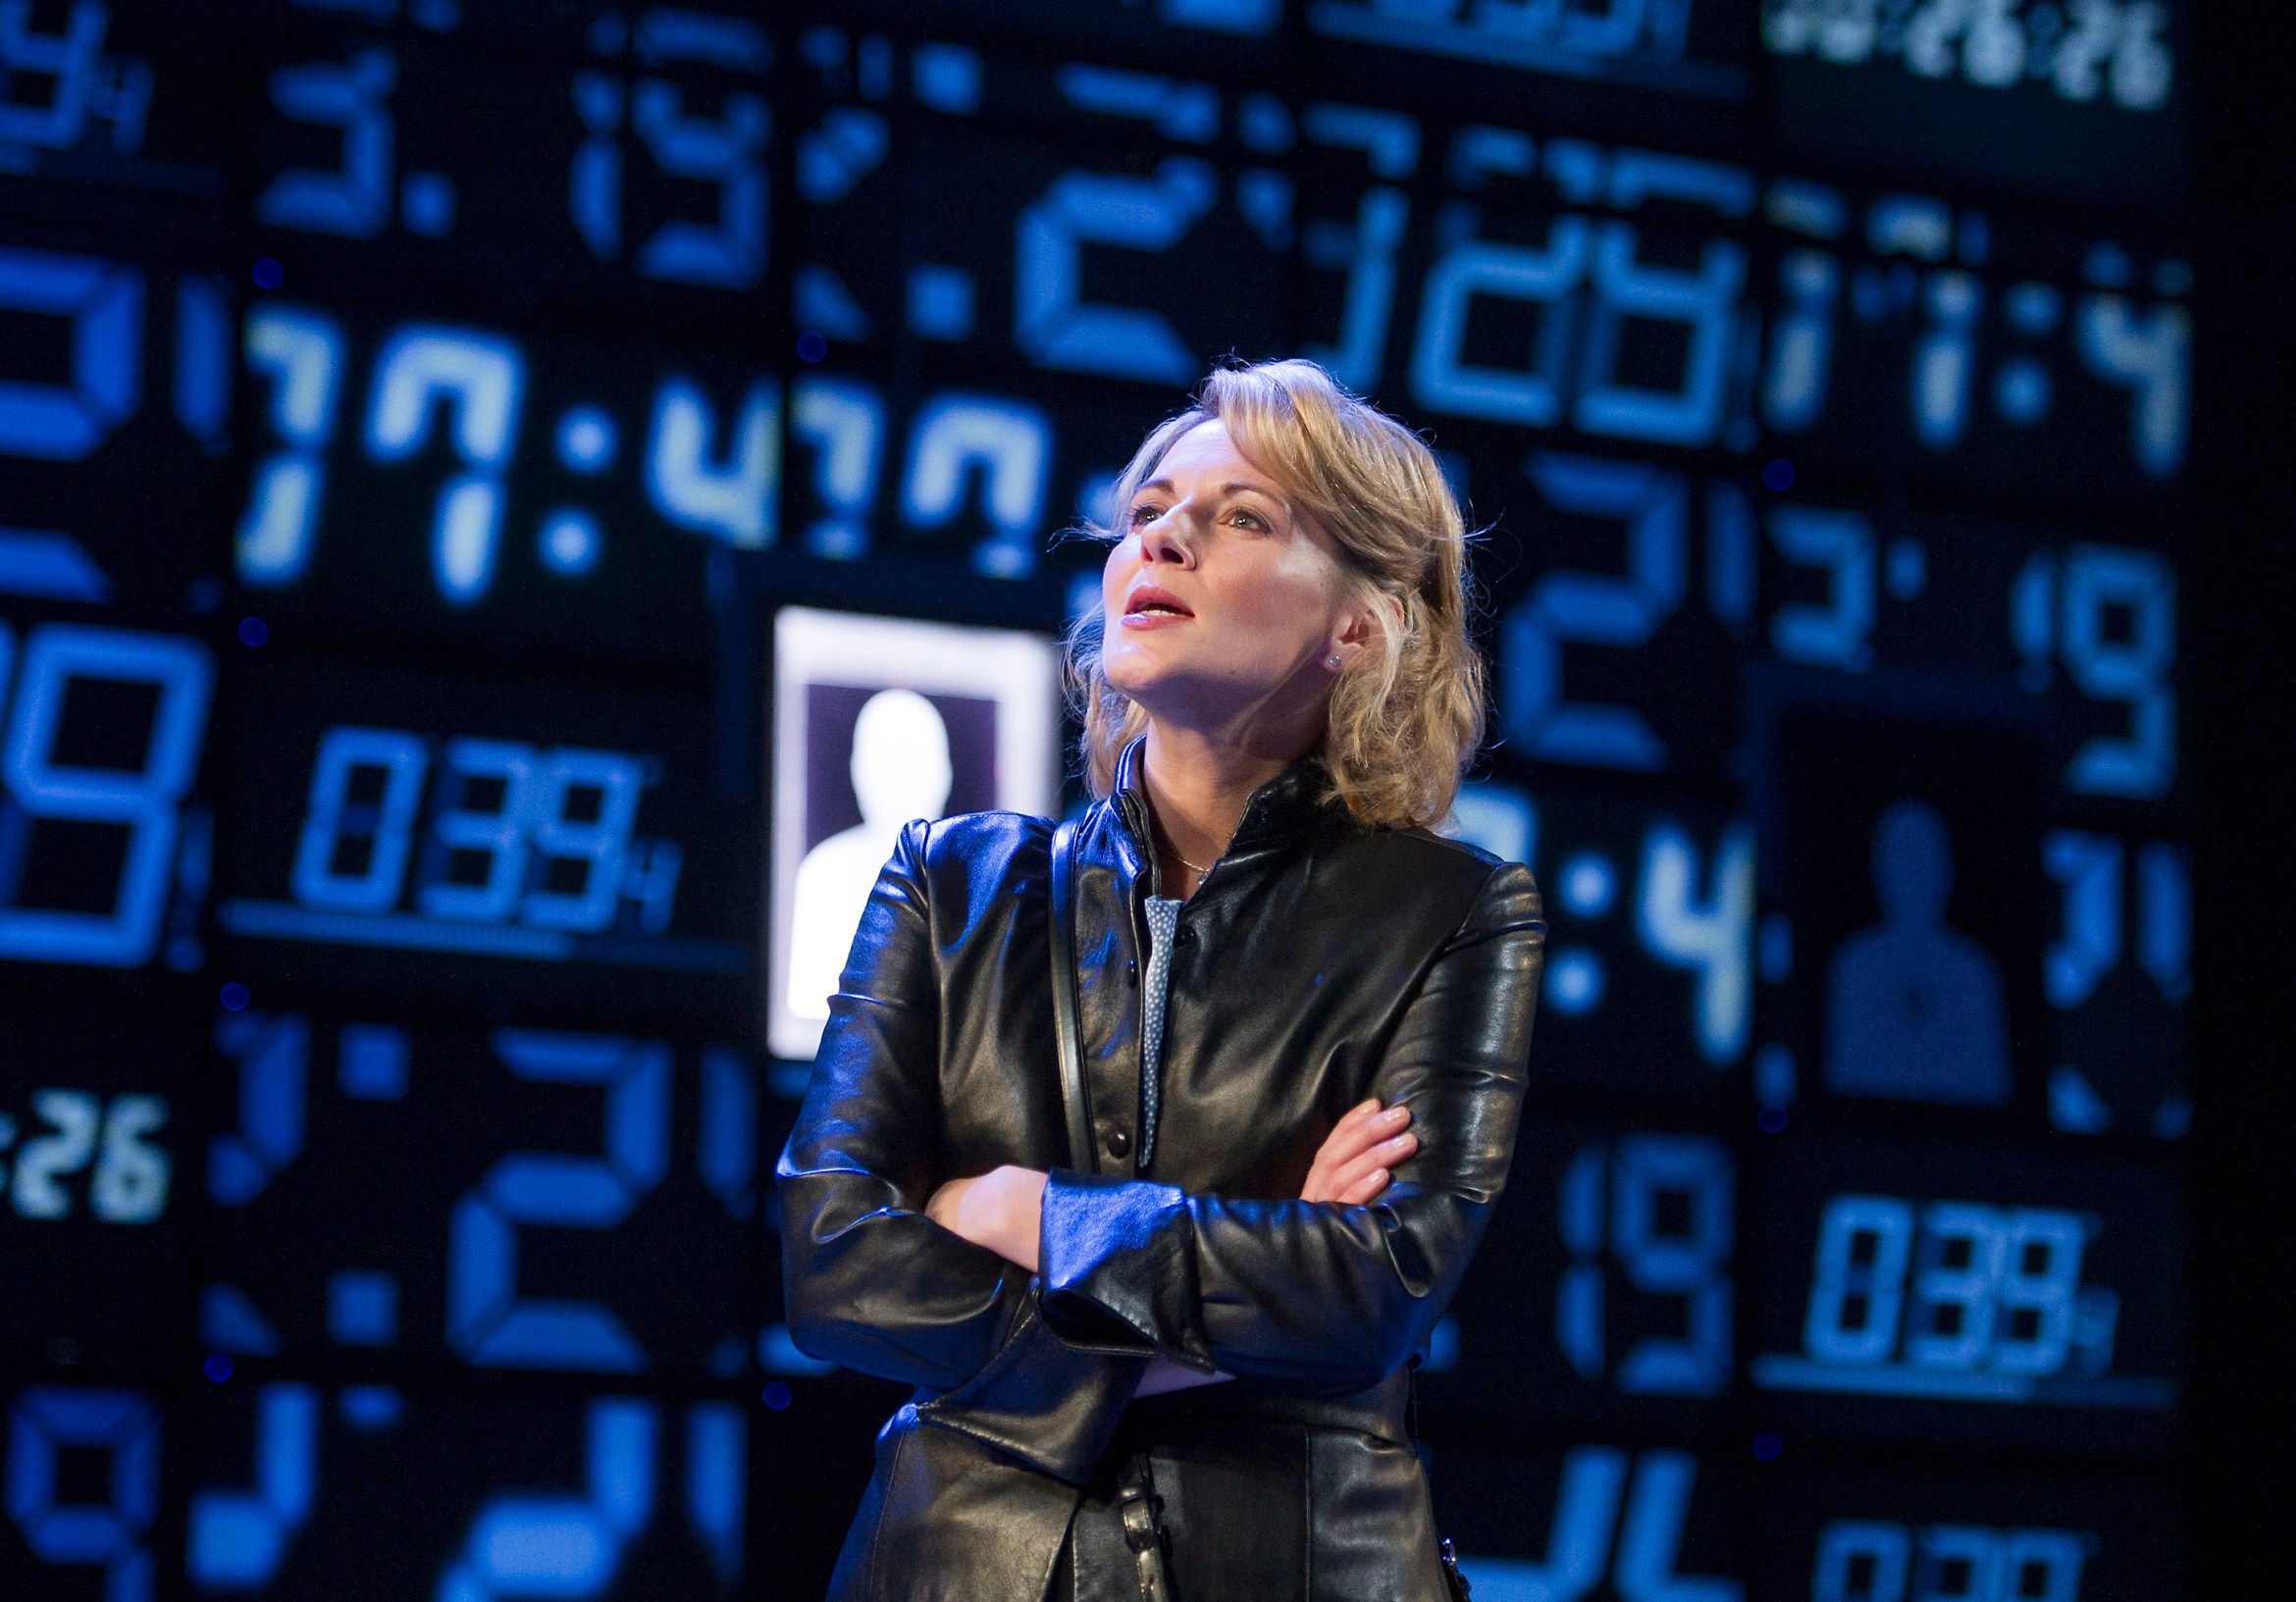 'Hapgood' Play by Tom Stoppard performed at the Hampstead Theatre, London, UK